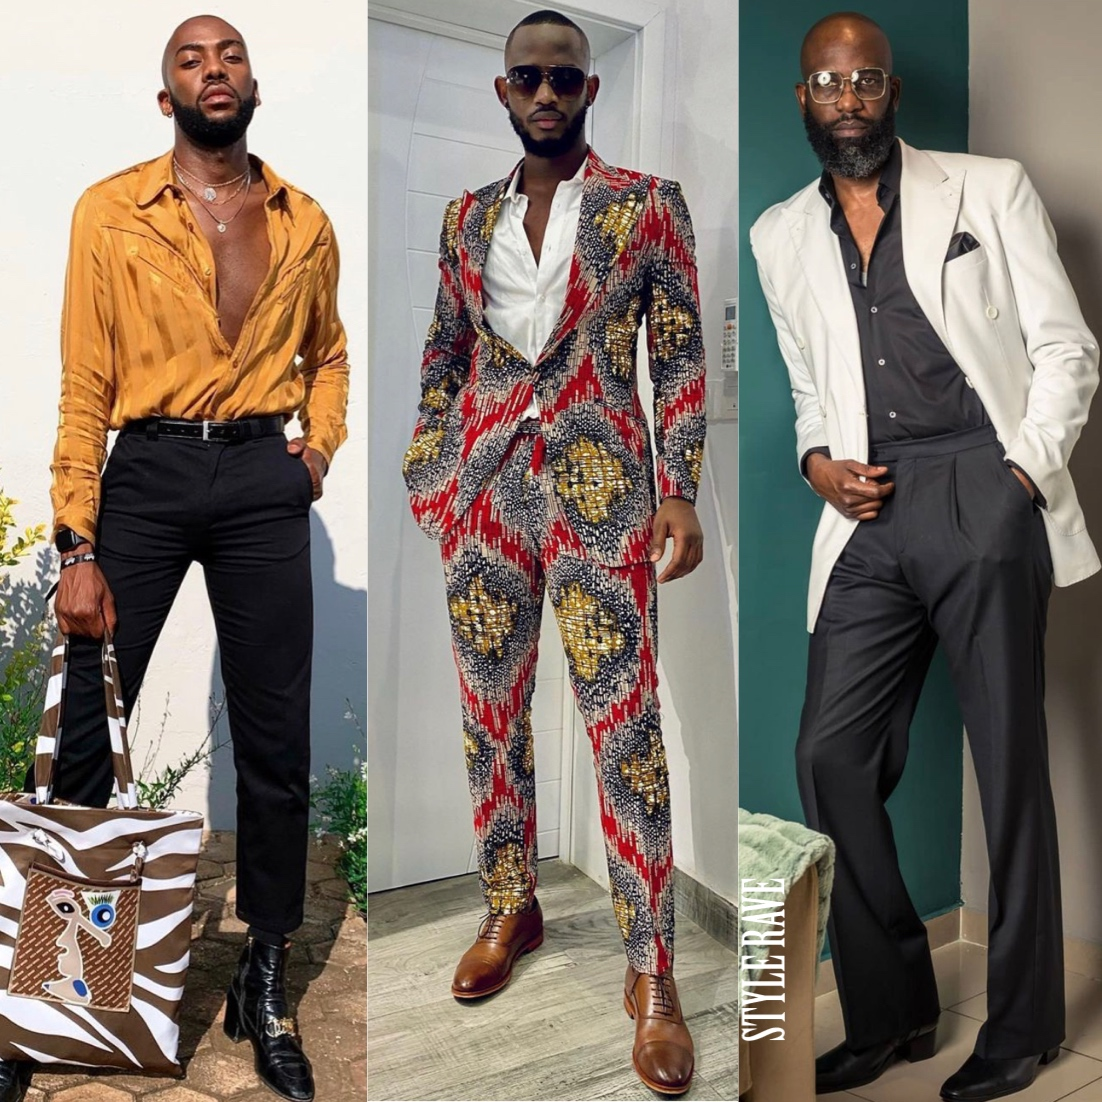 best-mens-style-dressed-male-celebrities-africa-bespoke-fashion-style-rave